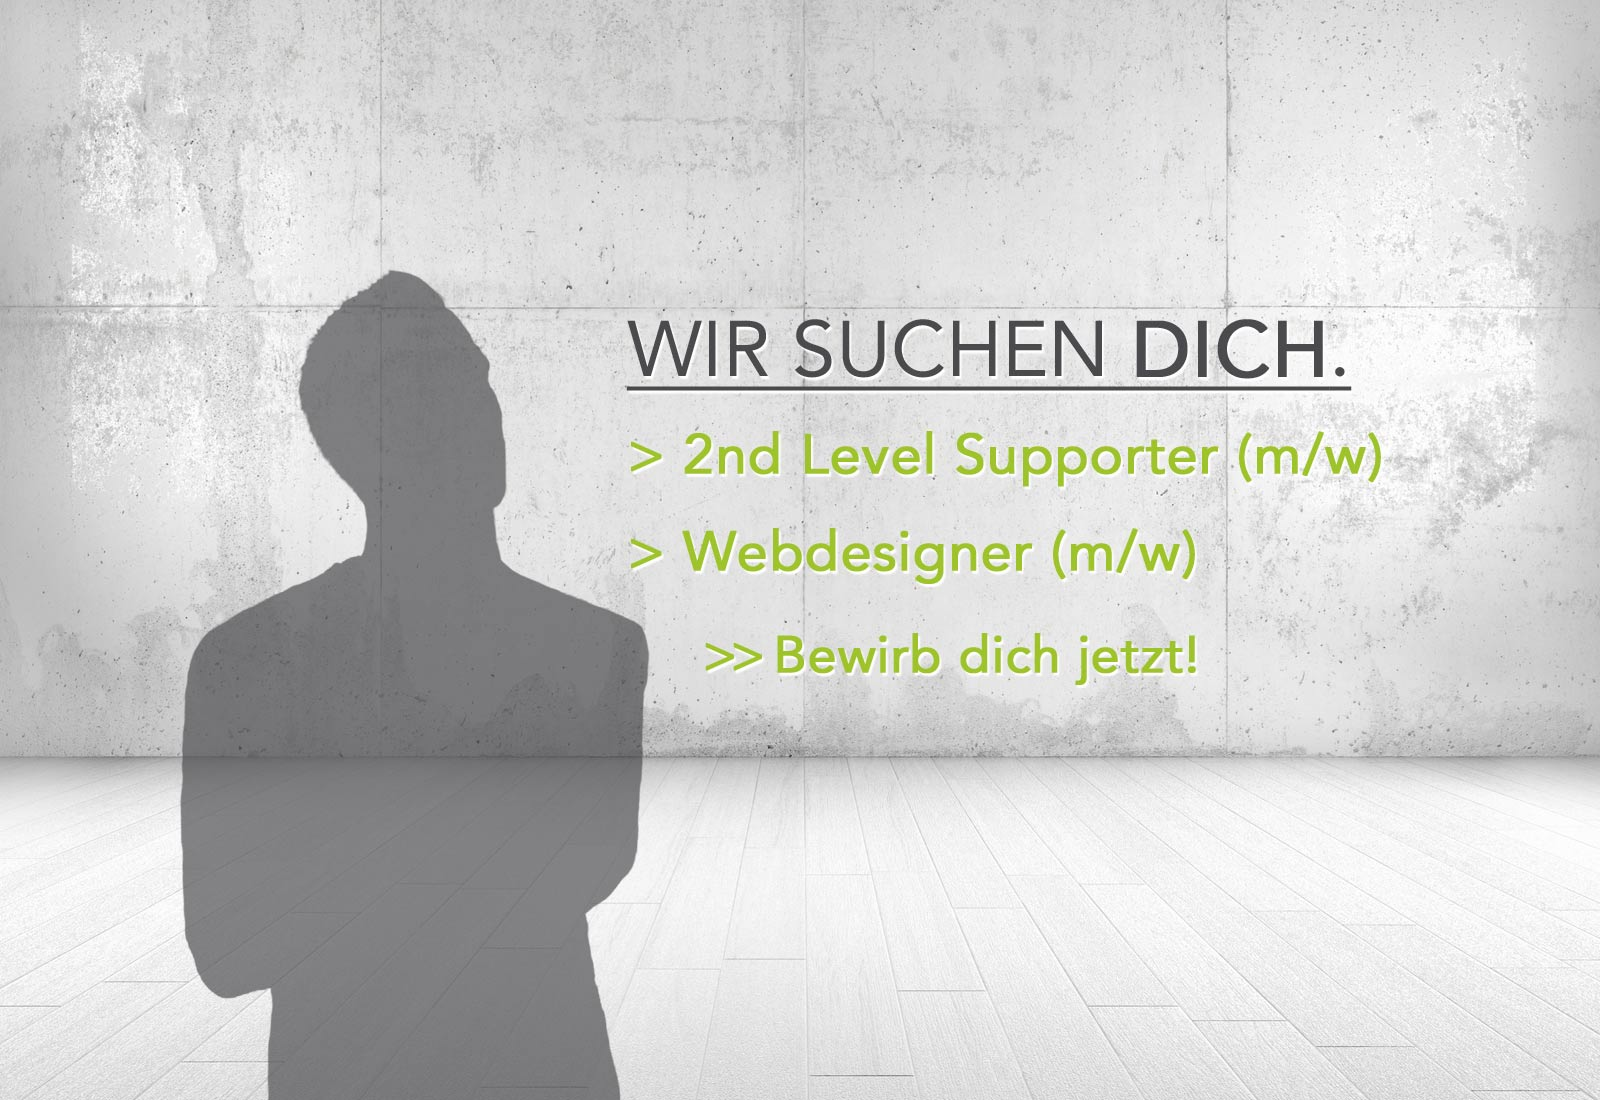 IT-Qualitätsmanager (m/w) - Webdesigner (m/w)